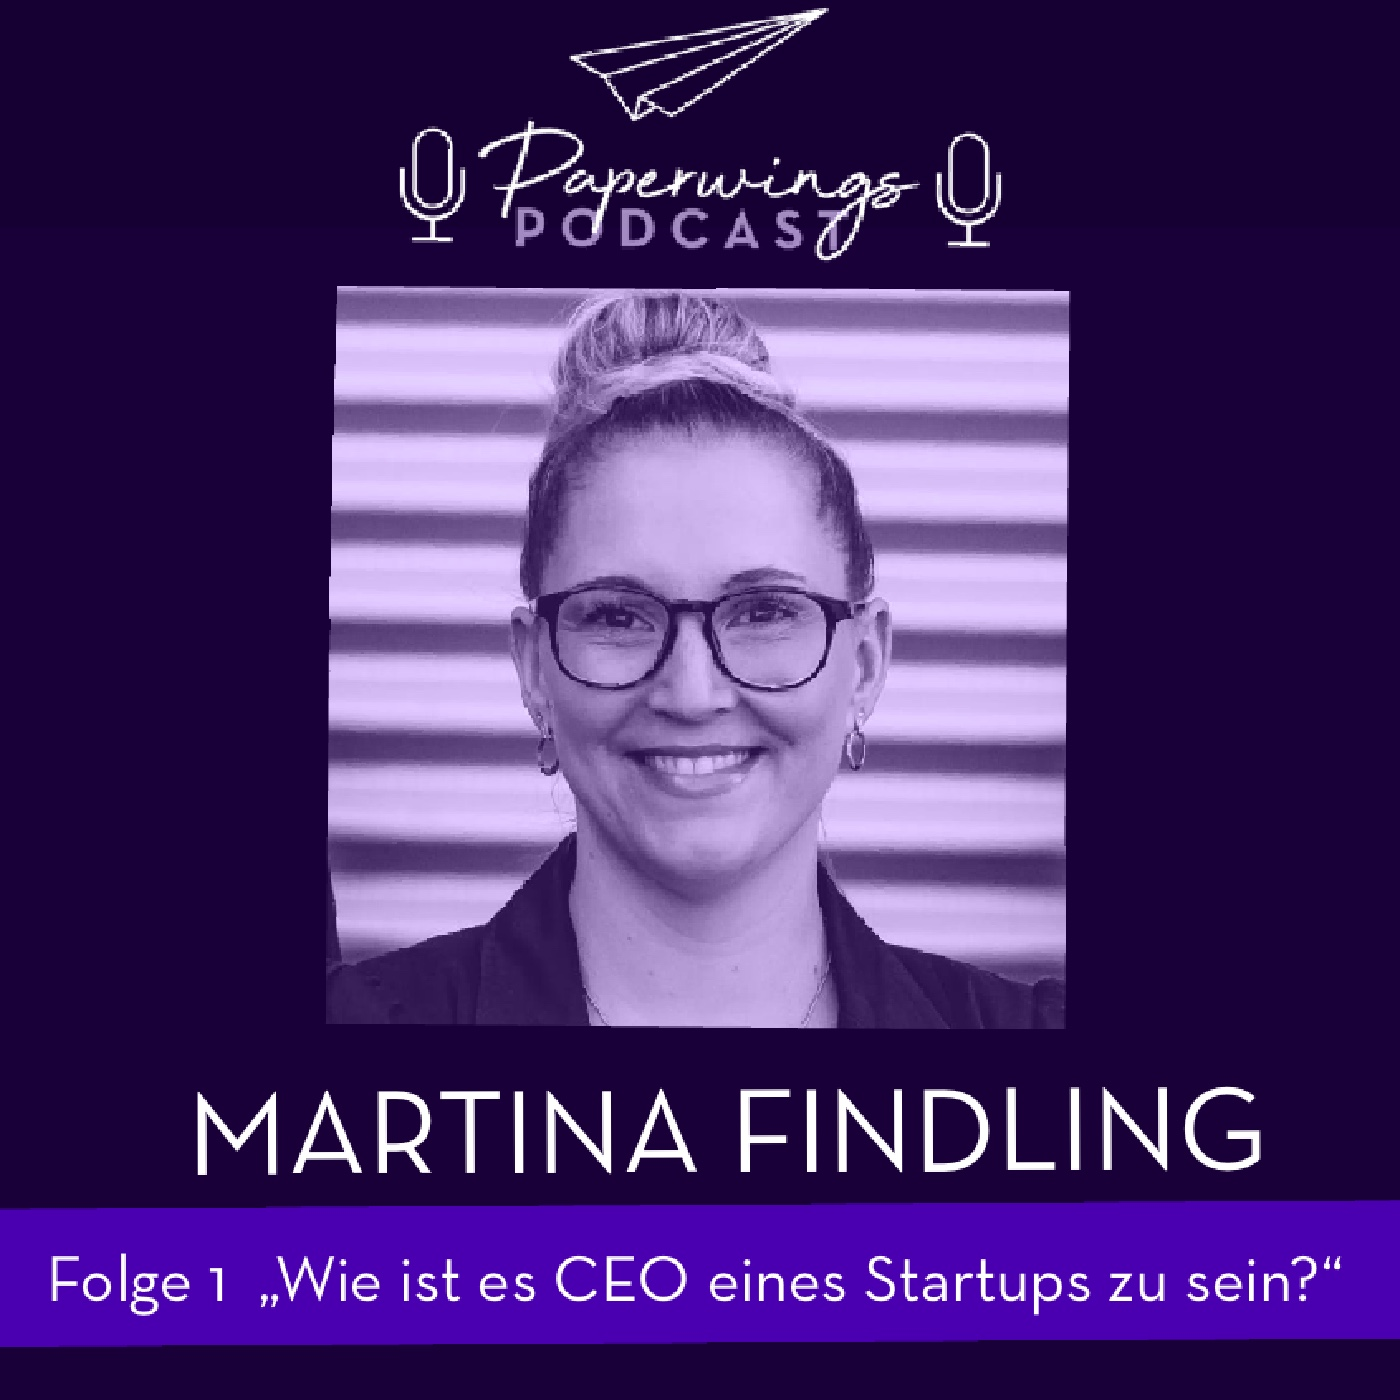 martina-Findling-Paperwings-Podcast--Kachel